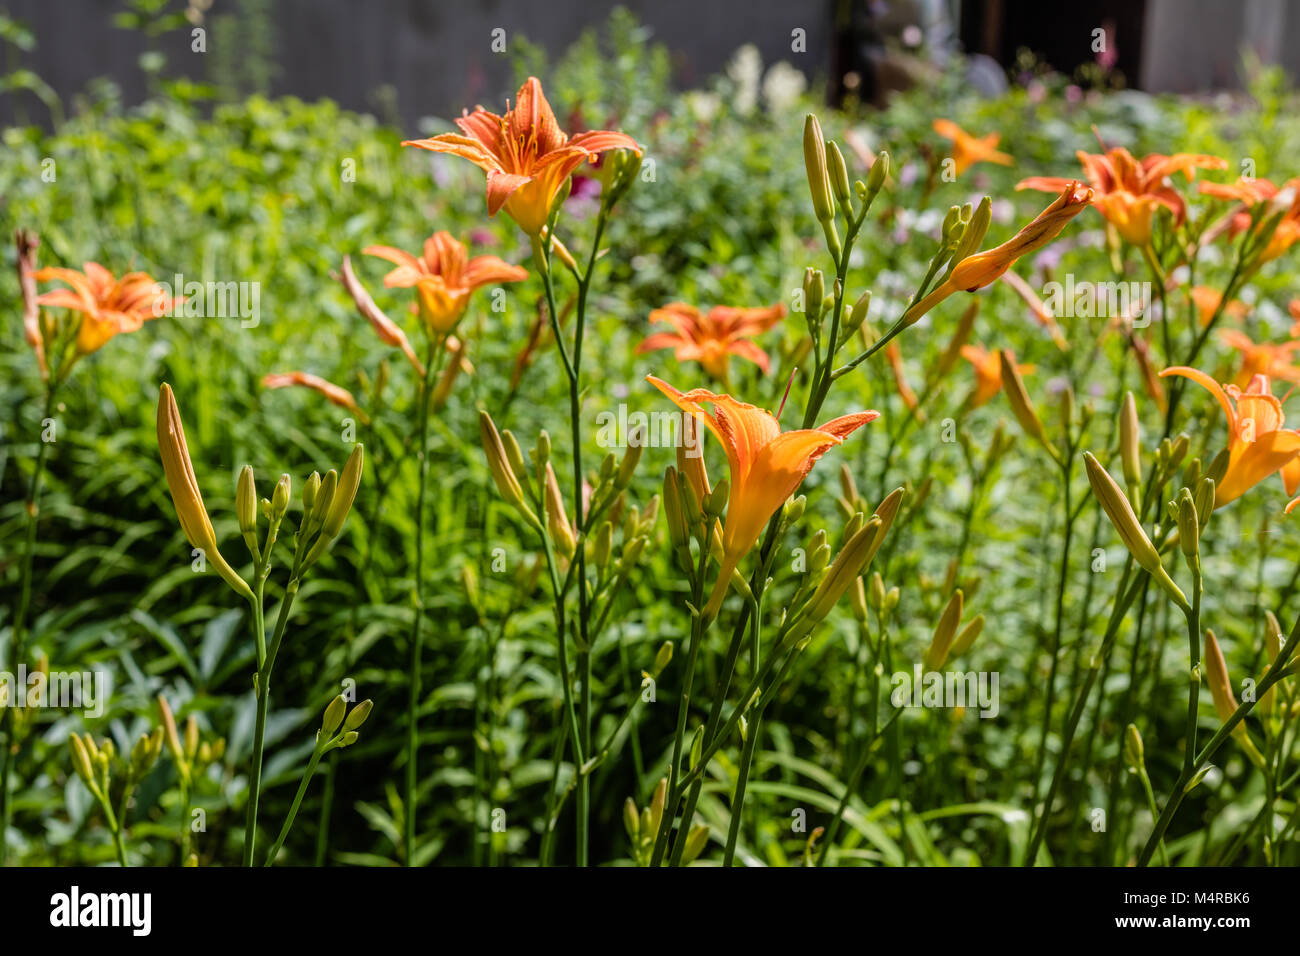 Growing Tiger Lily Flowers Siberia Russia Stock Photo 175076362